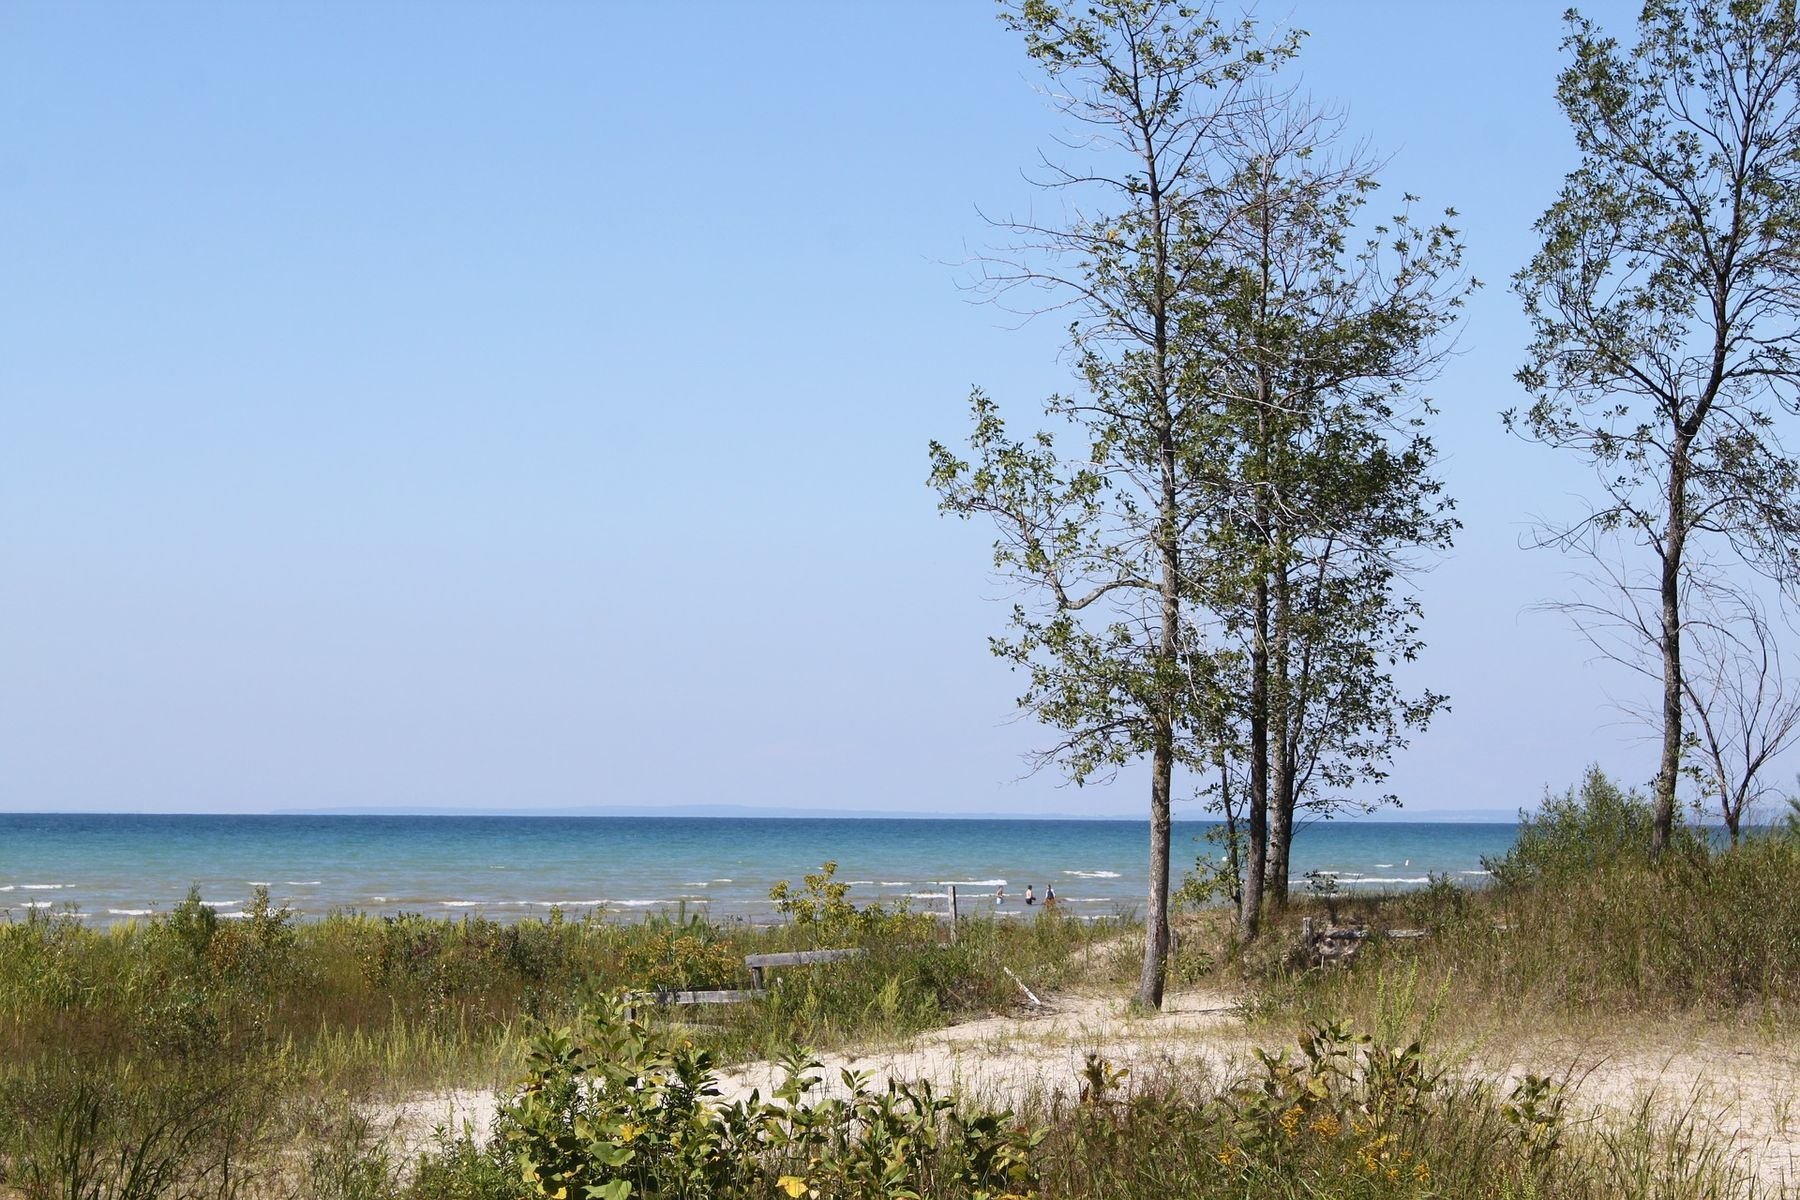 sand and grass in Wasaga Beach on a sunny day in Ontario